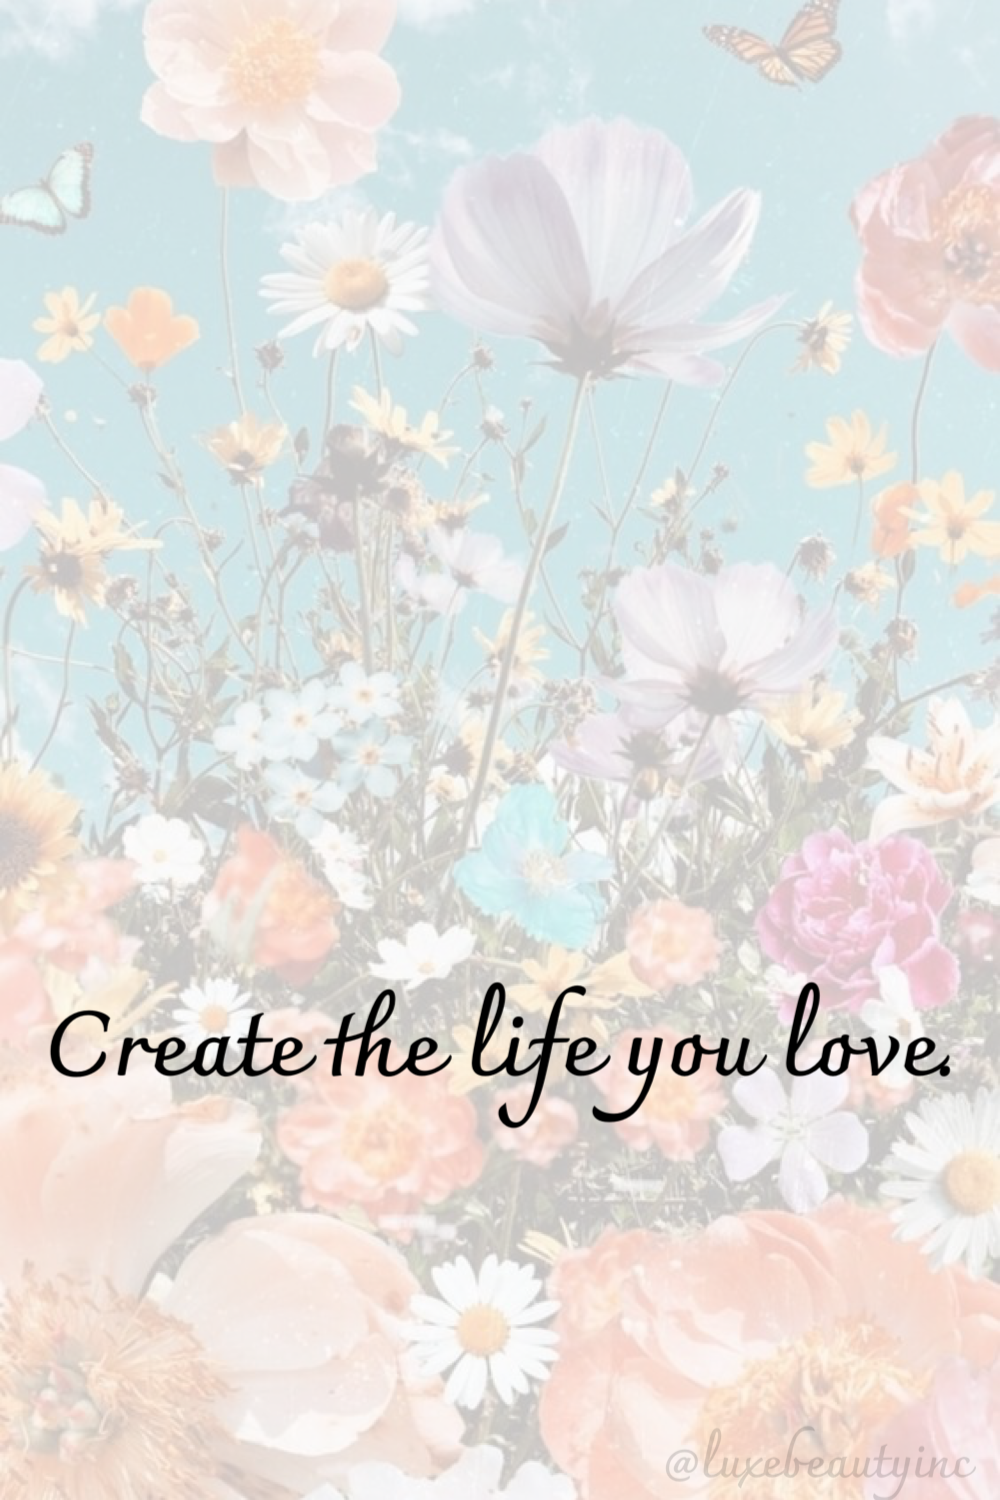 Create the life you love. 🌸 in 5  Hope wallpaper, Life